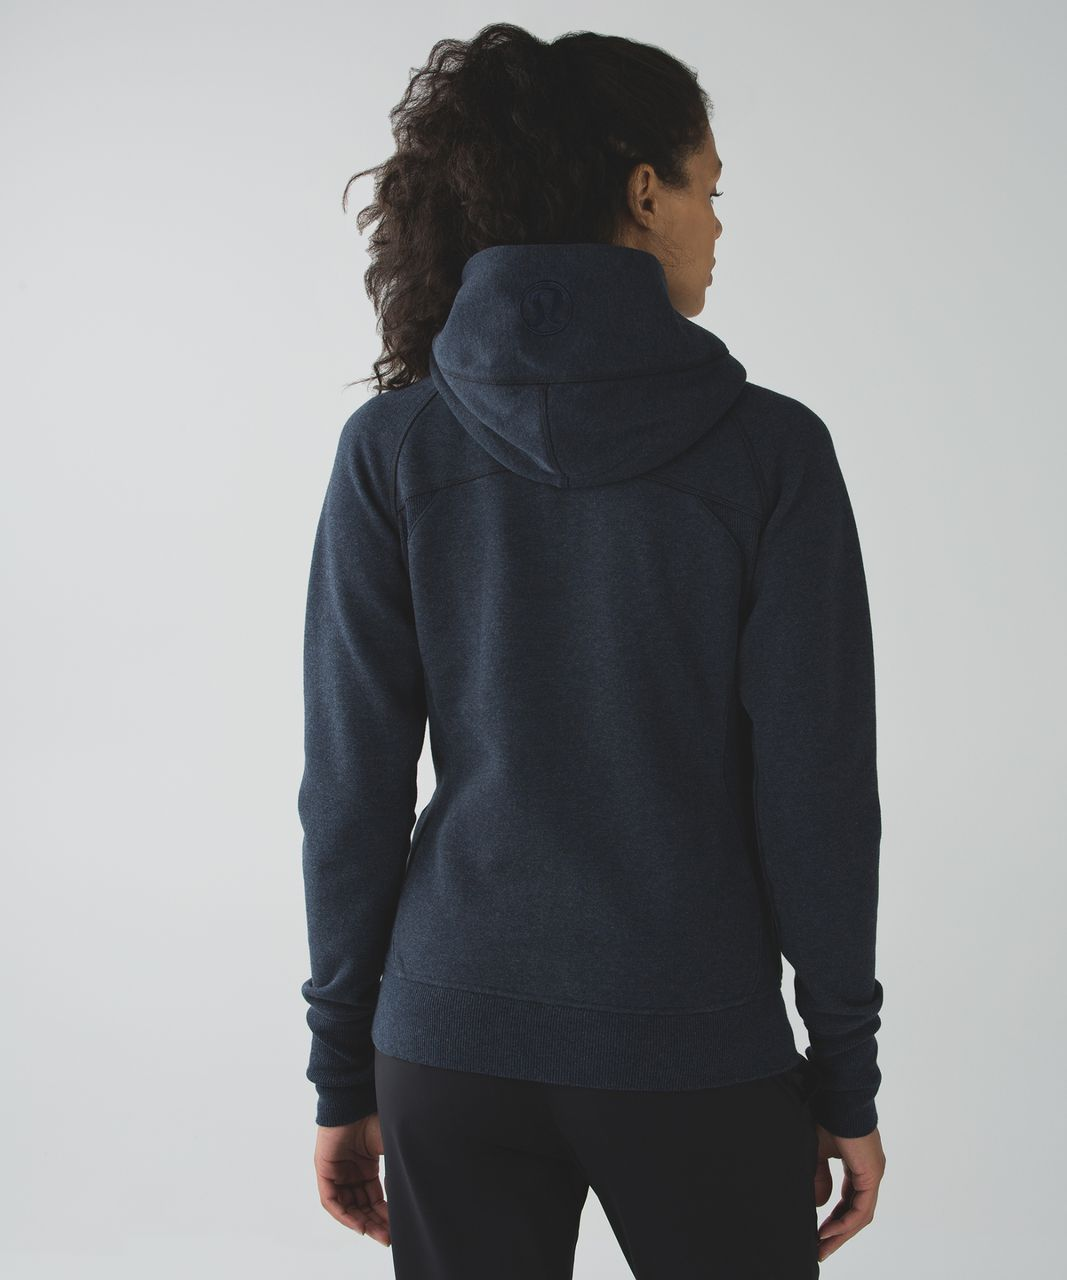 Lululemon Scuba Hoodie III (First Release) - Heathered Naval Blue